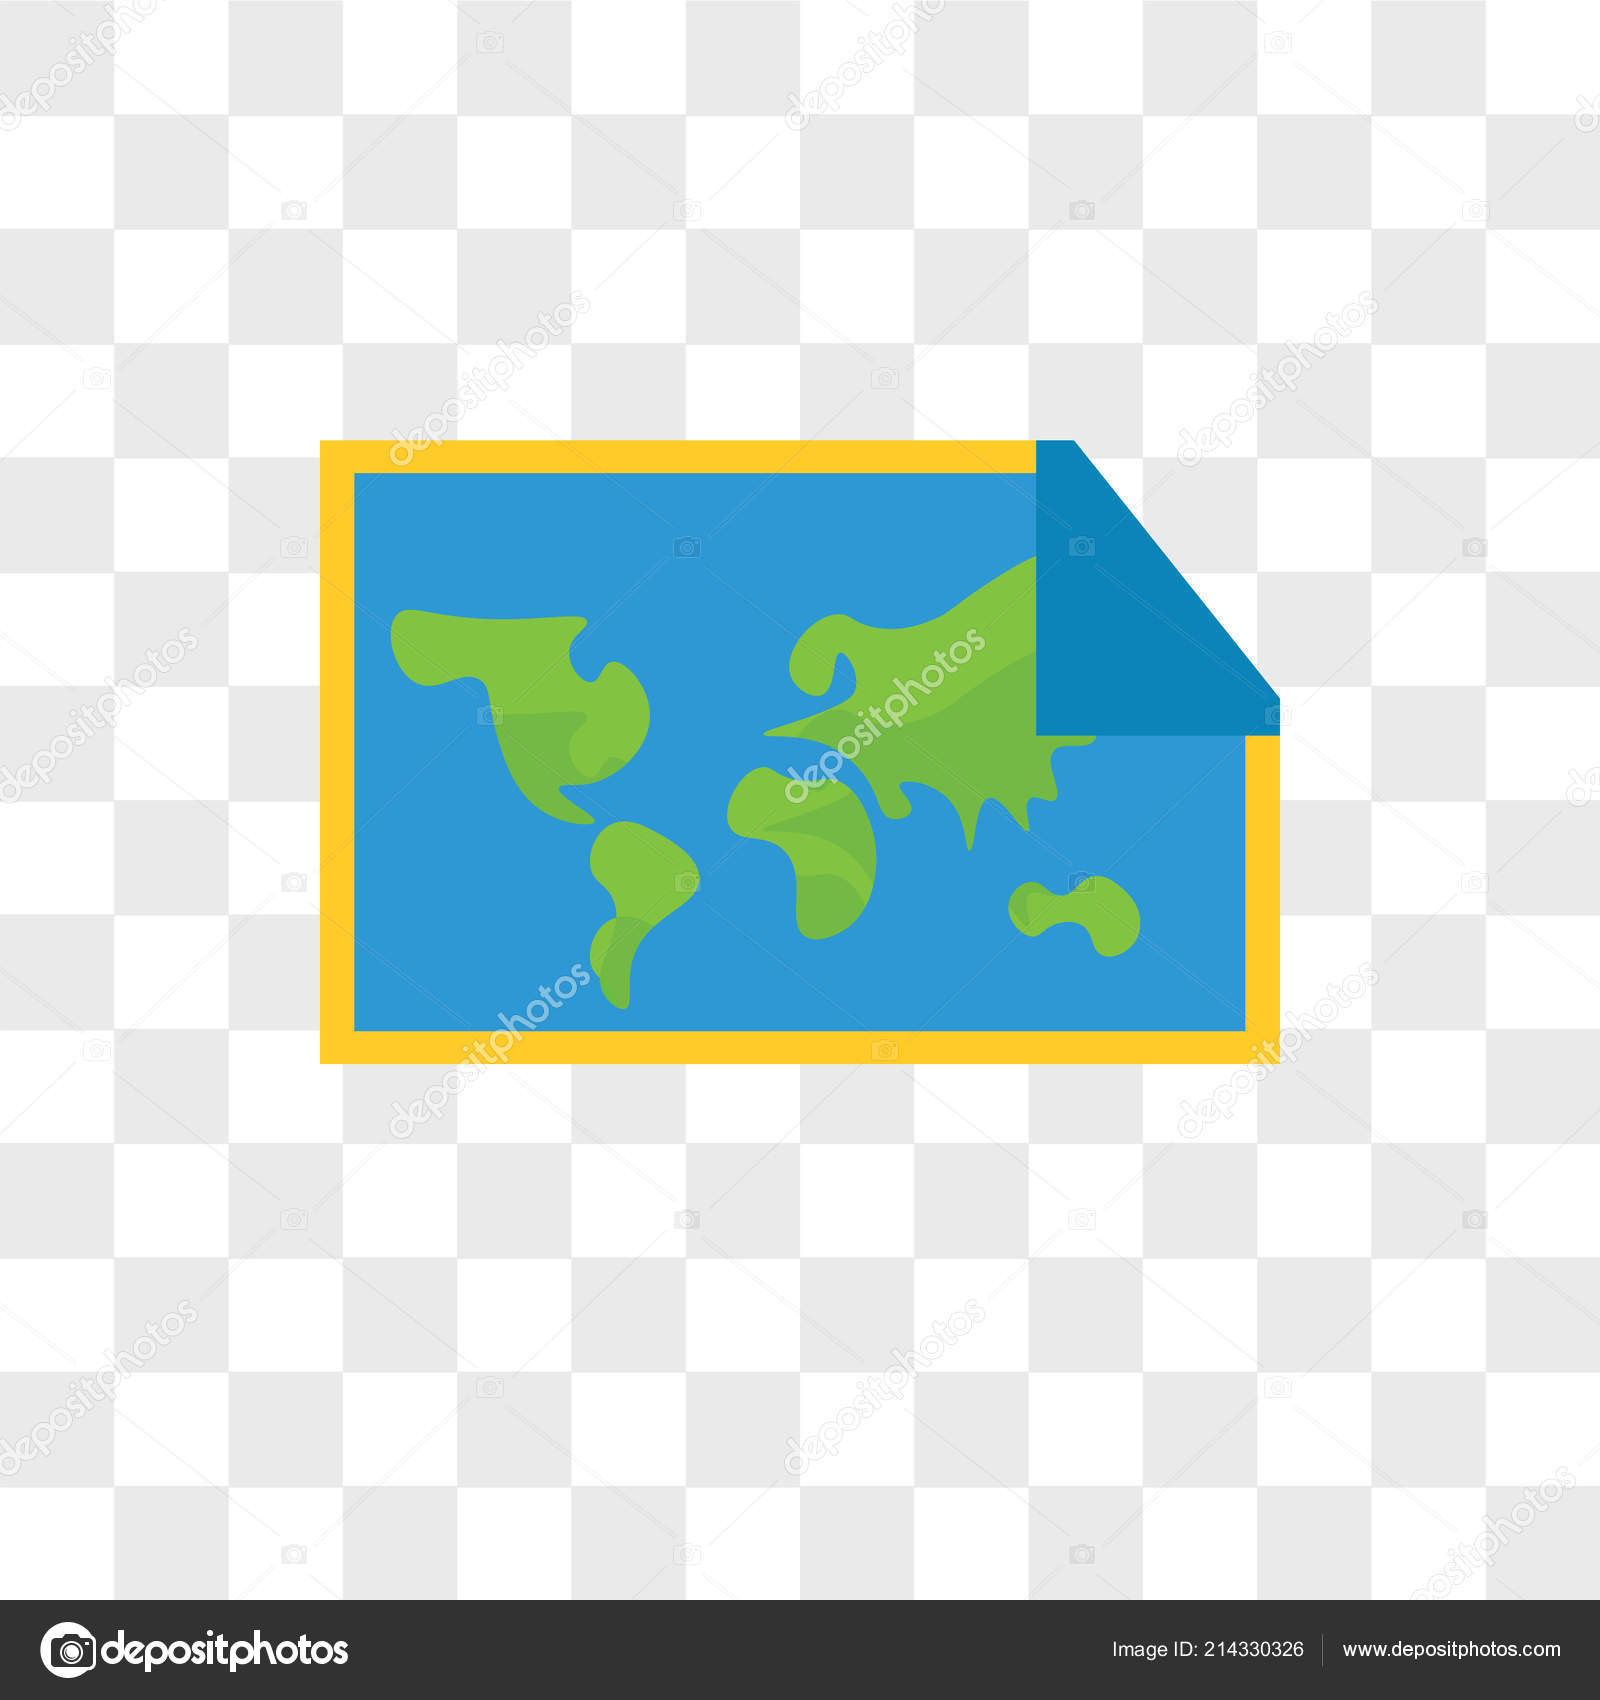 Background: world map png transparent | World map vector ...